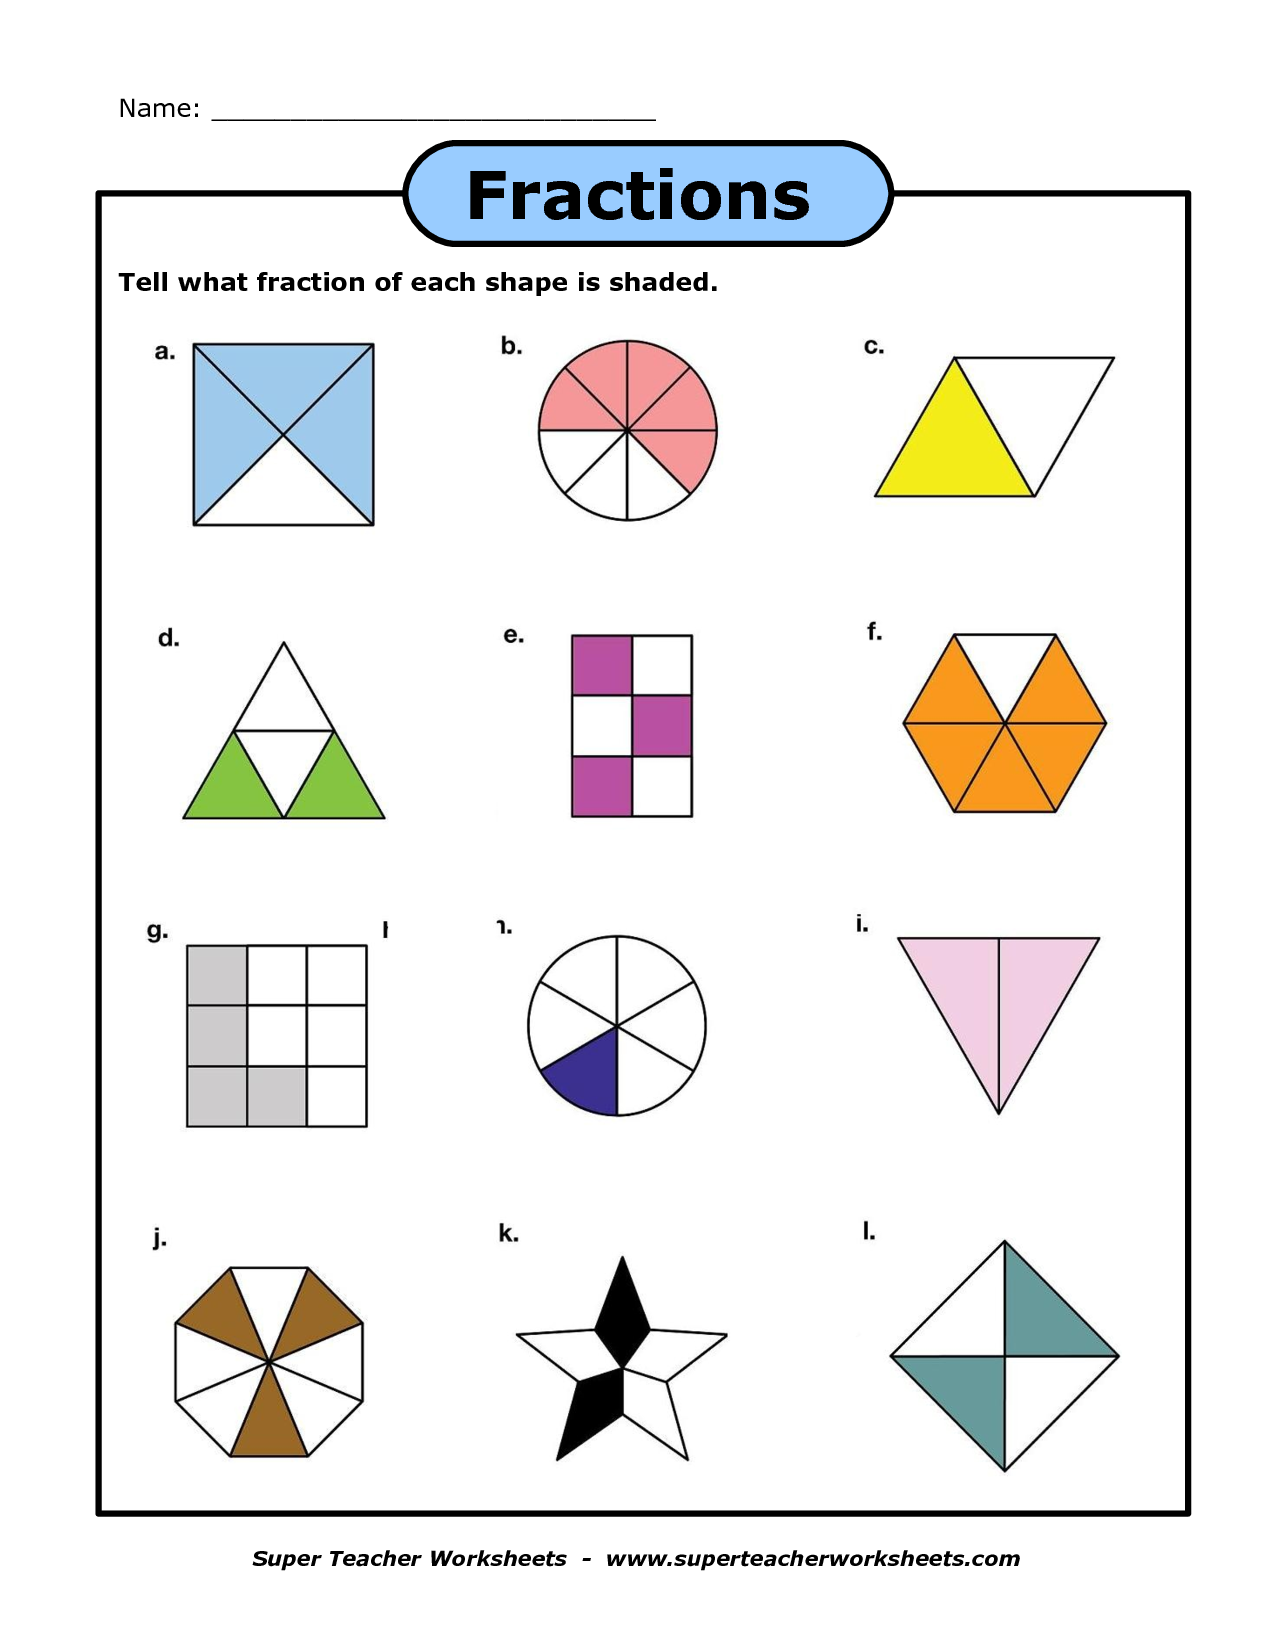 shaded fractions worksheet Brandonbriceus – Shading Fractions Worksheet